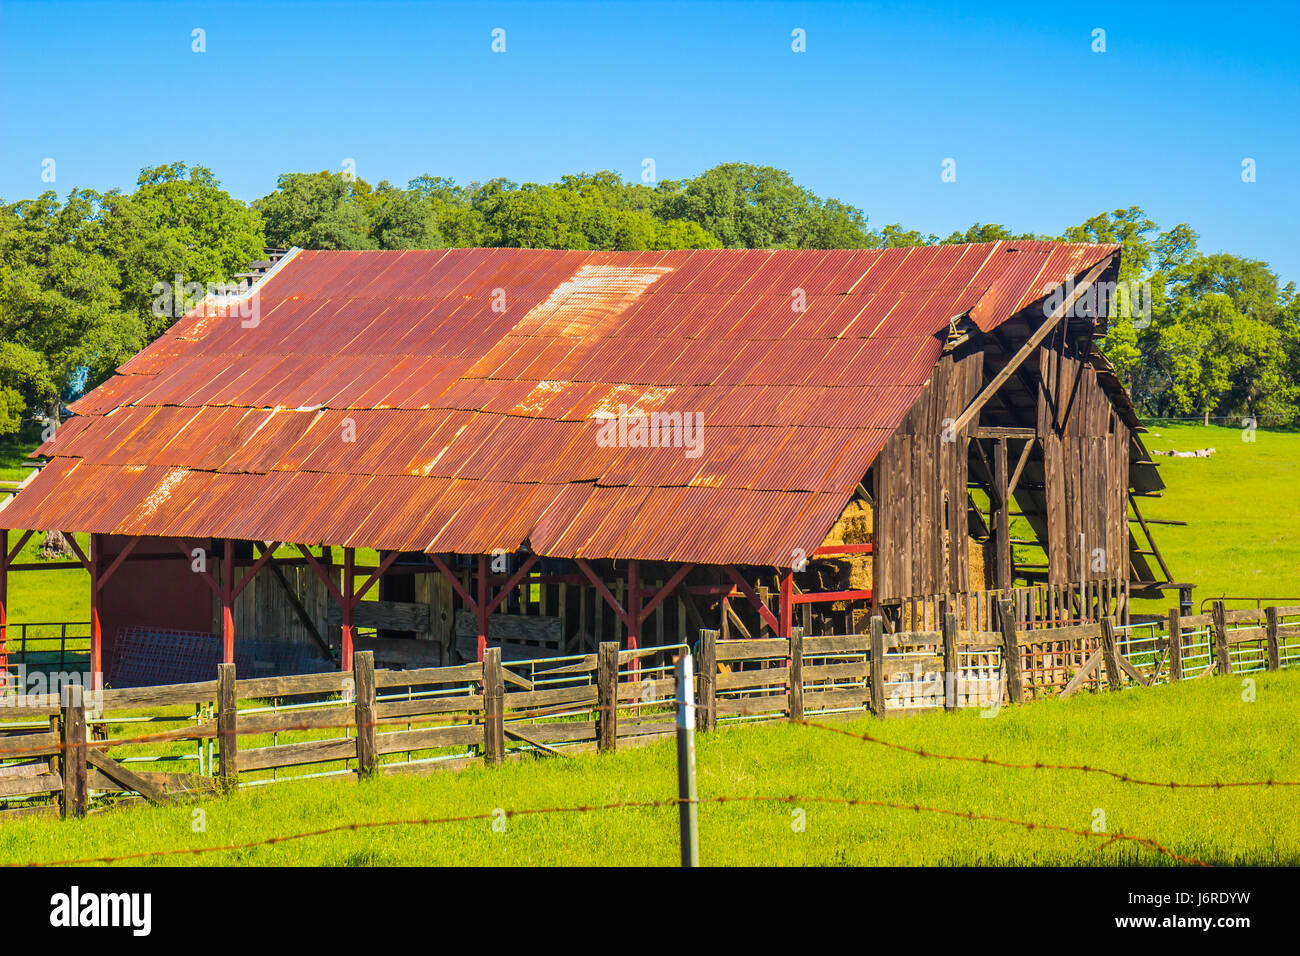 Old Rusted Tin Roof Barn On Ranch   Stock Image